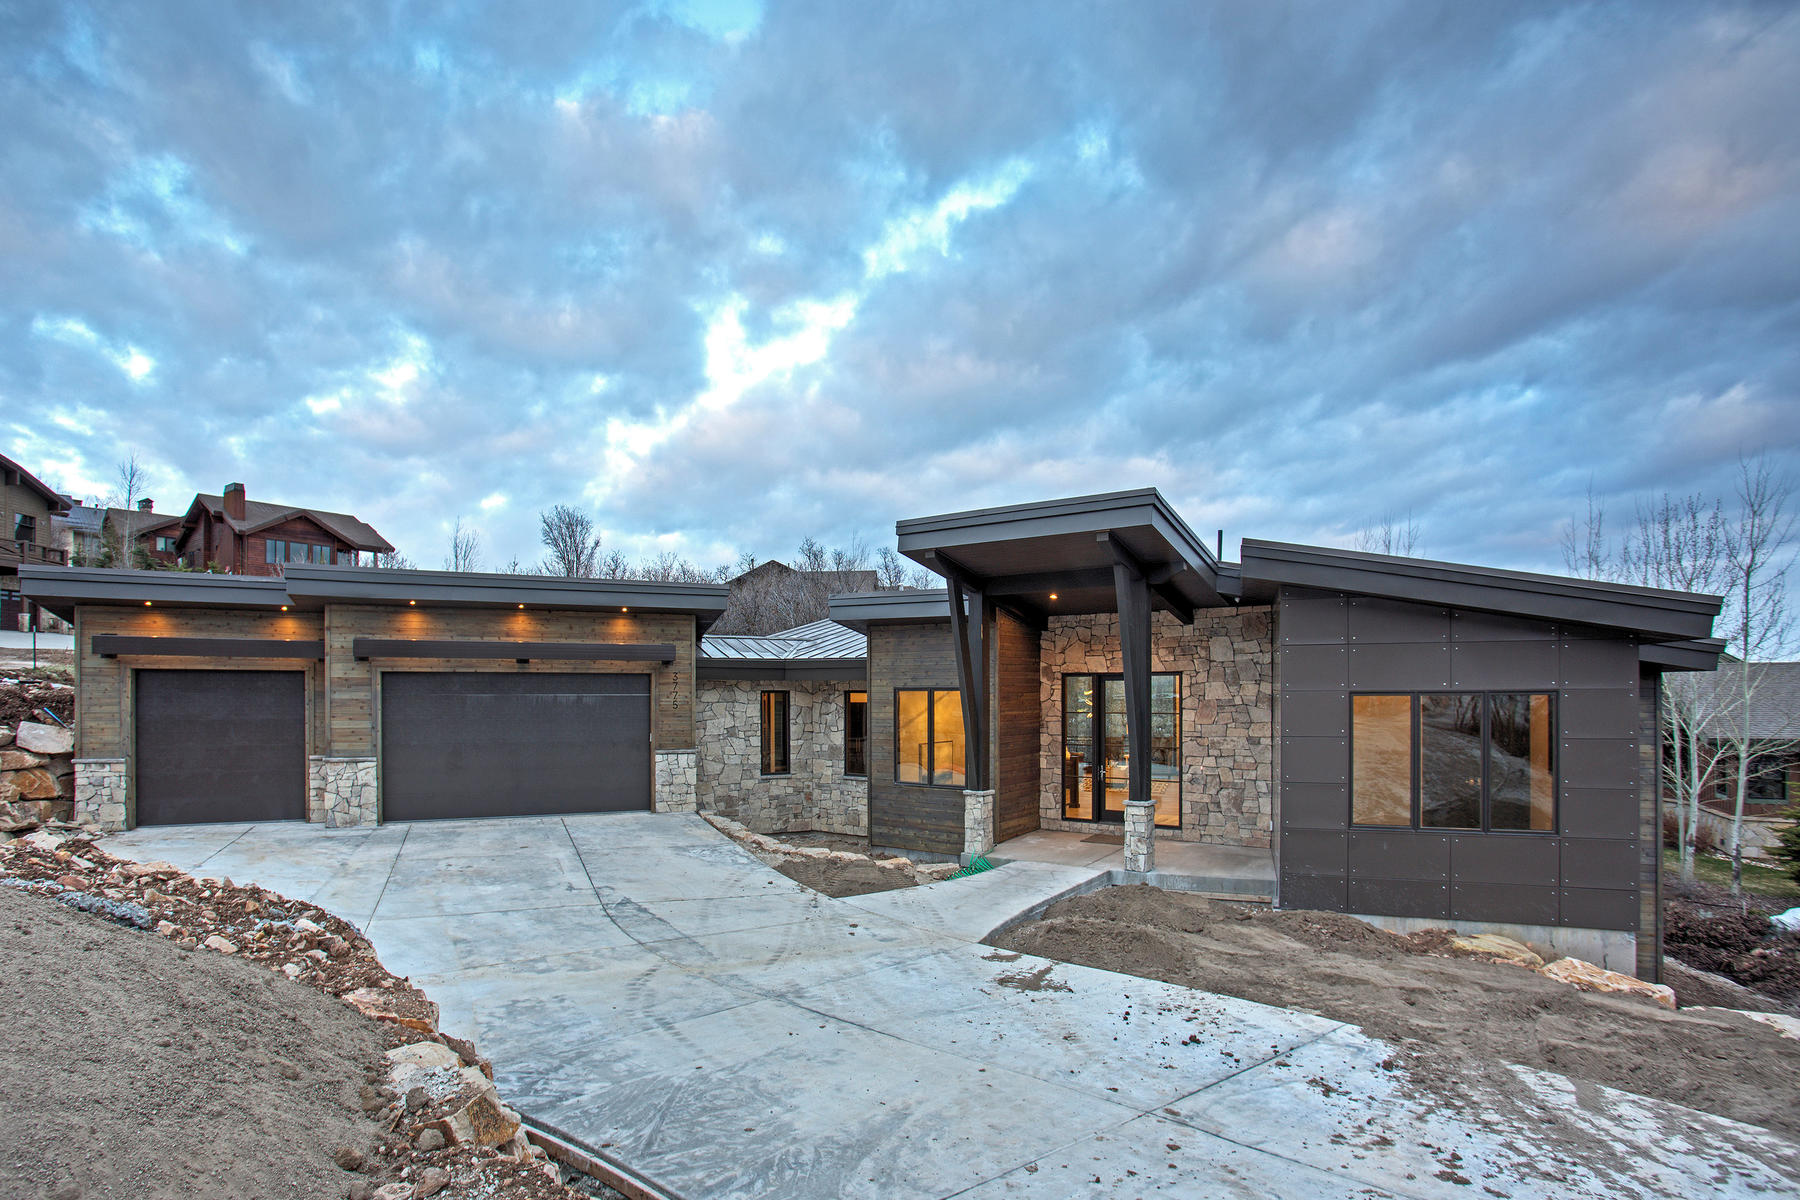 Maison unifamiliale pour l Vente à New Contemporary Construction in Royal Oaks at Deer Valley 3775 Sun Ridge Dr Park City, Utah, 84060 États-Unis